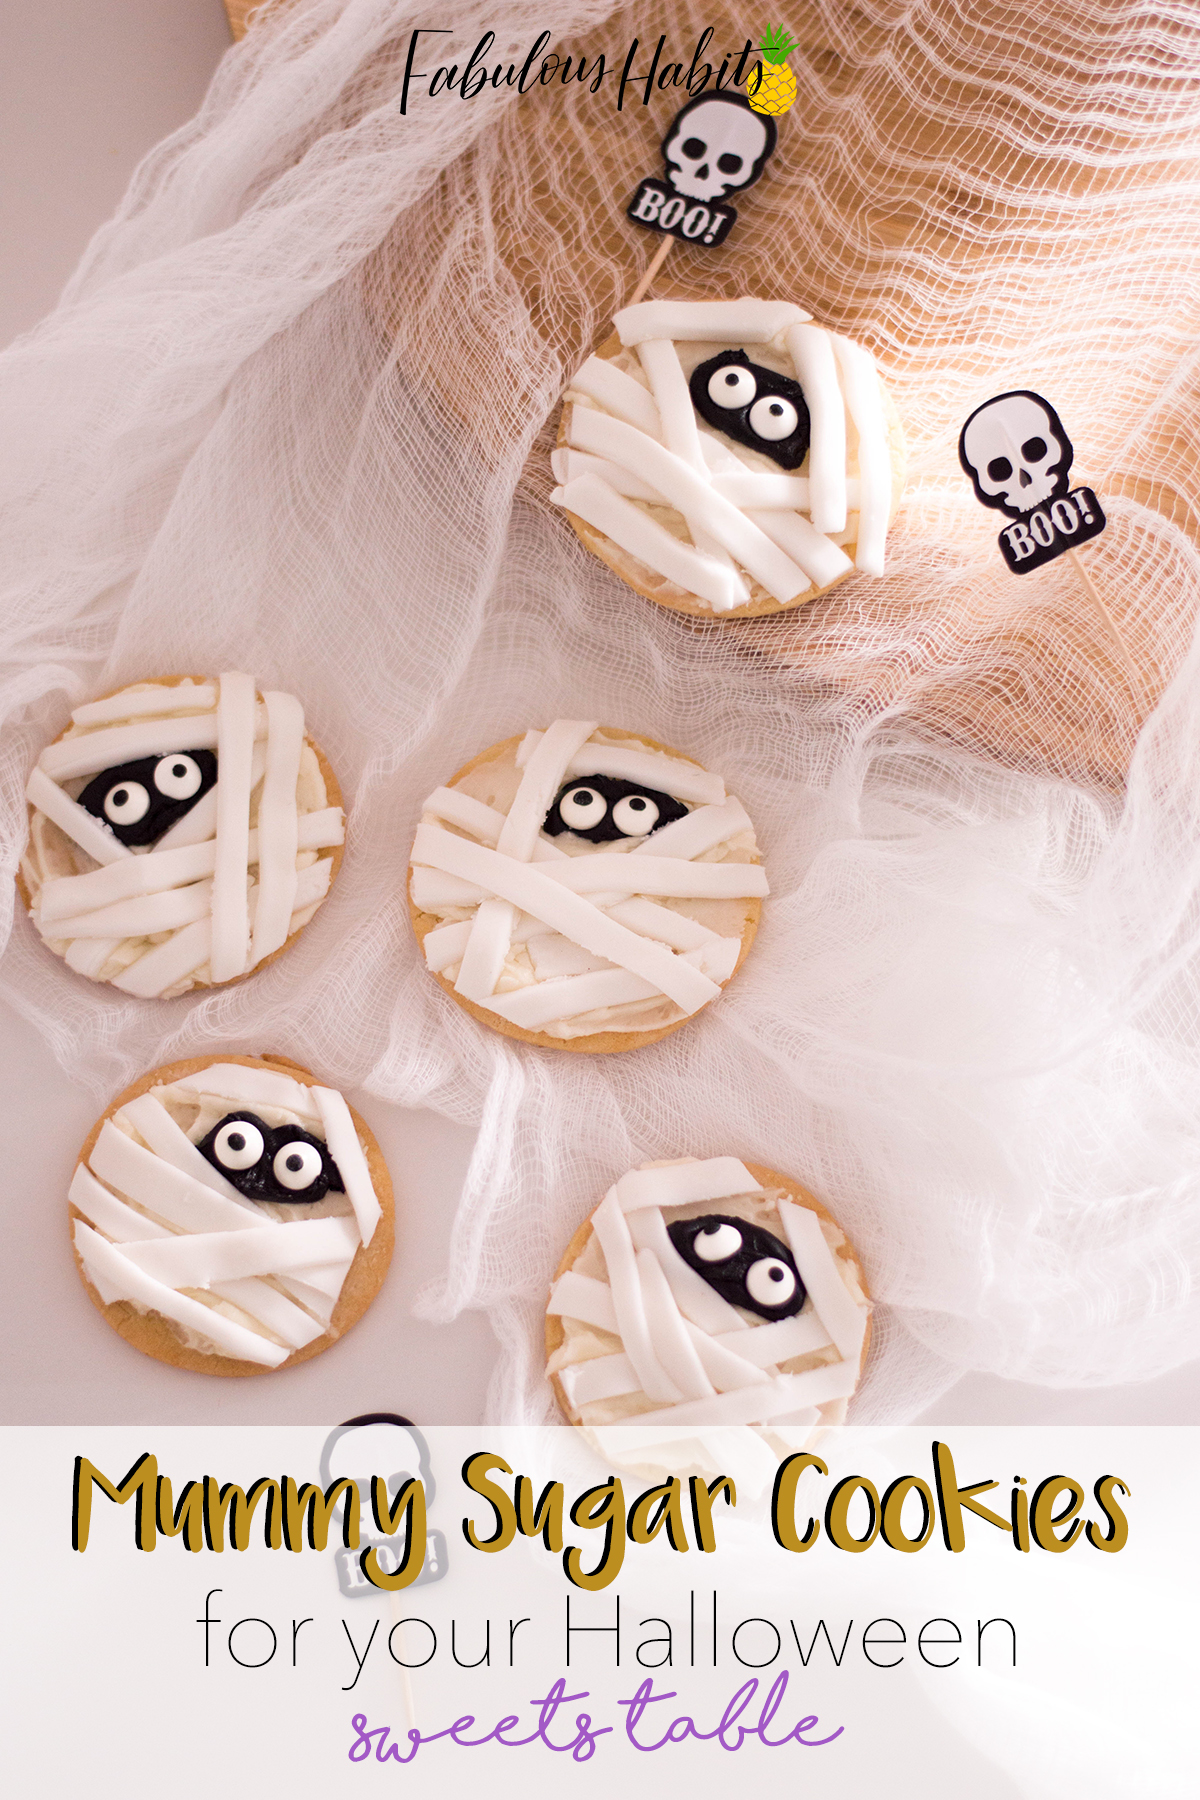 Giving my sugar cookies a Halloween makeover! My Mummy Sugar Cookies are filled with buttercream and topped with fondant bandages. Yum!